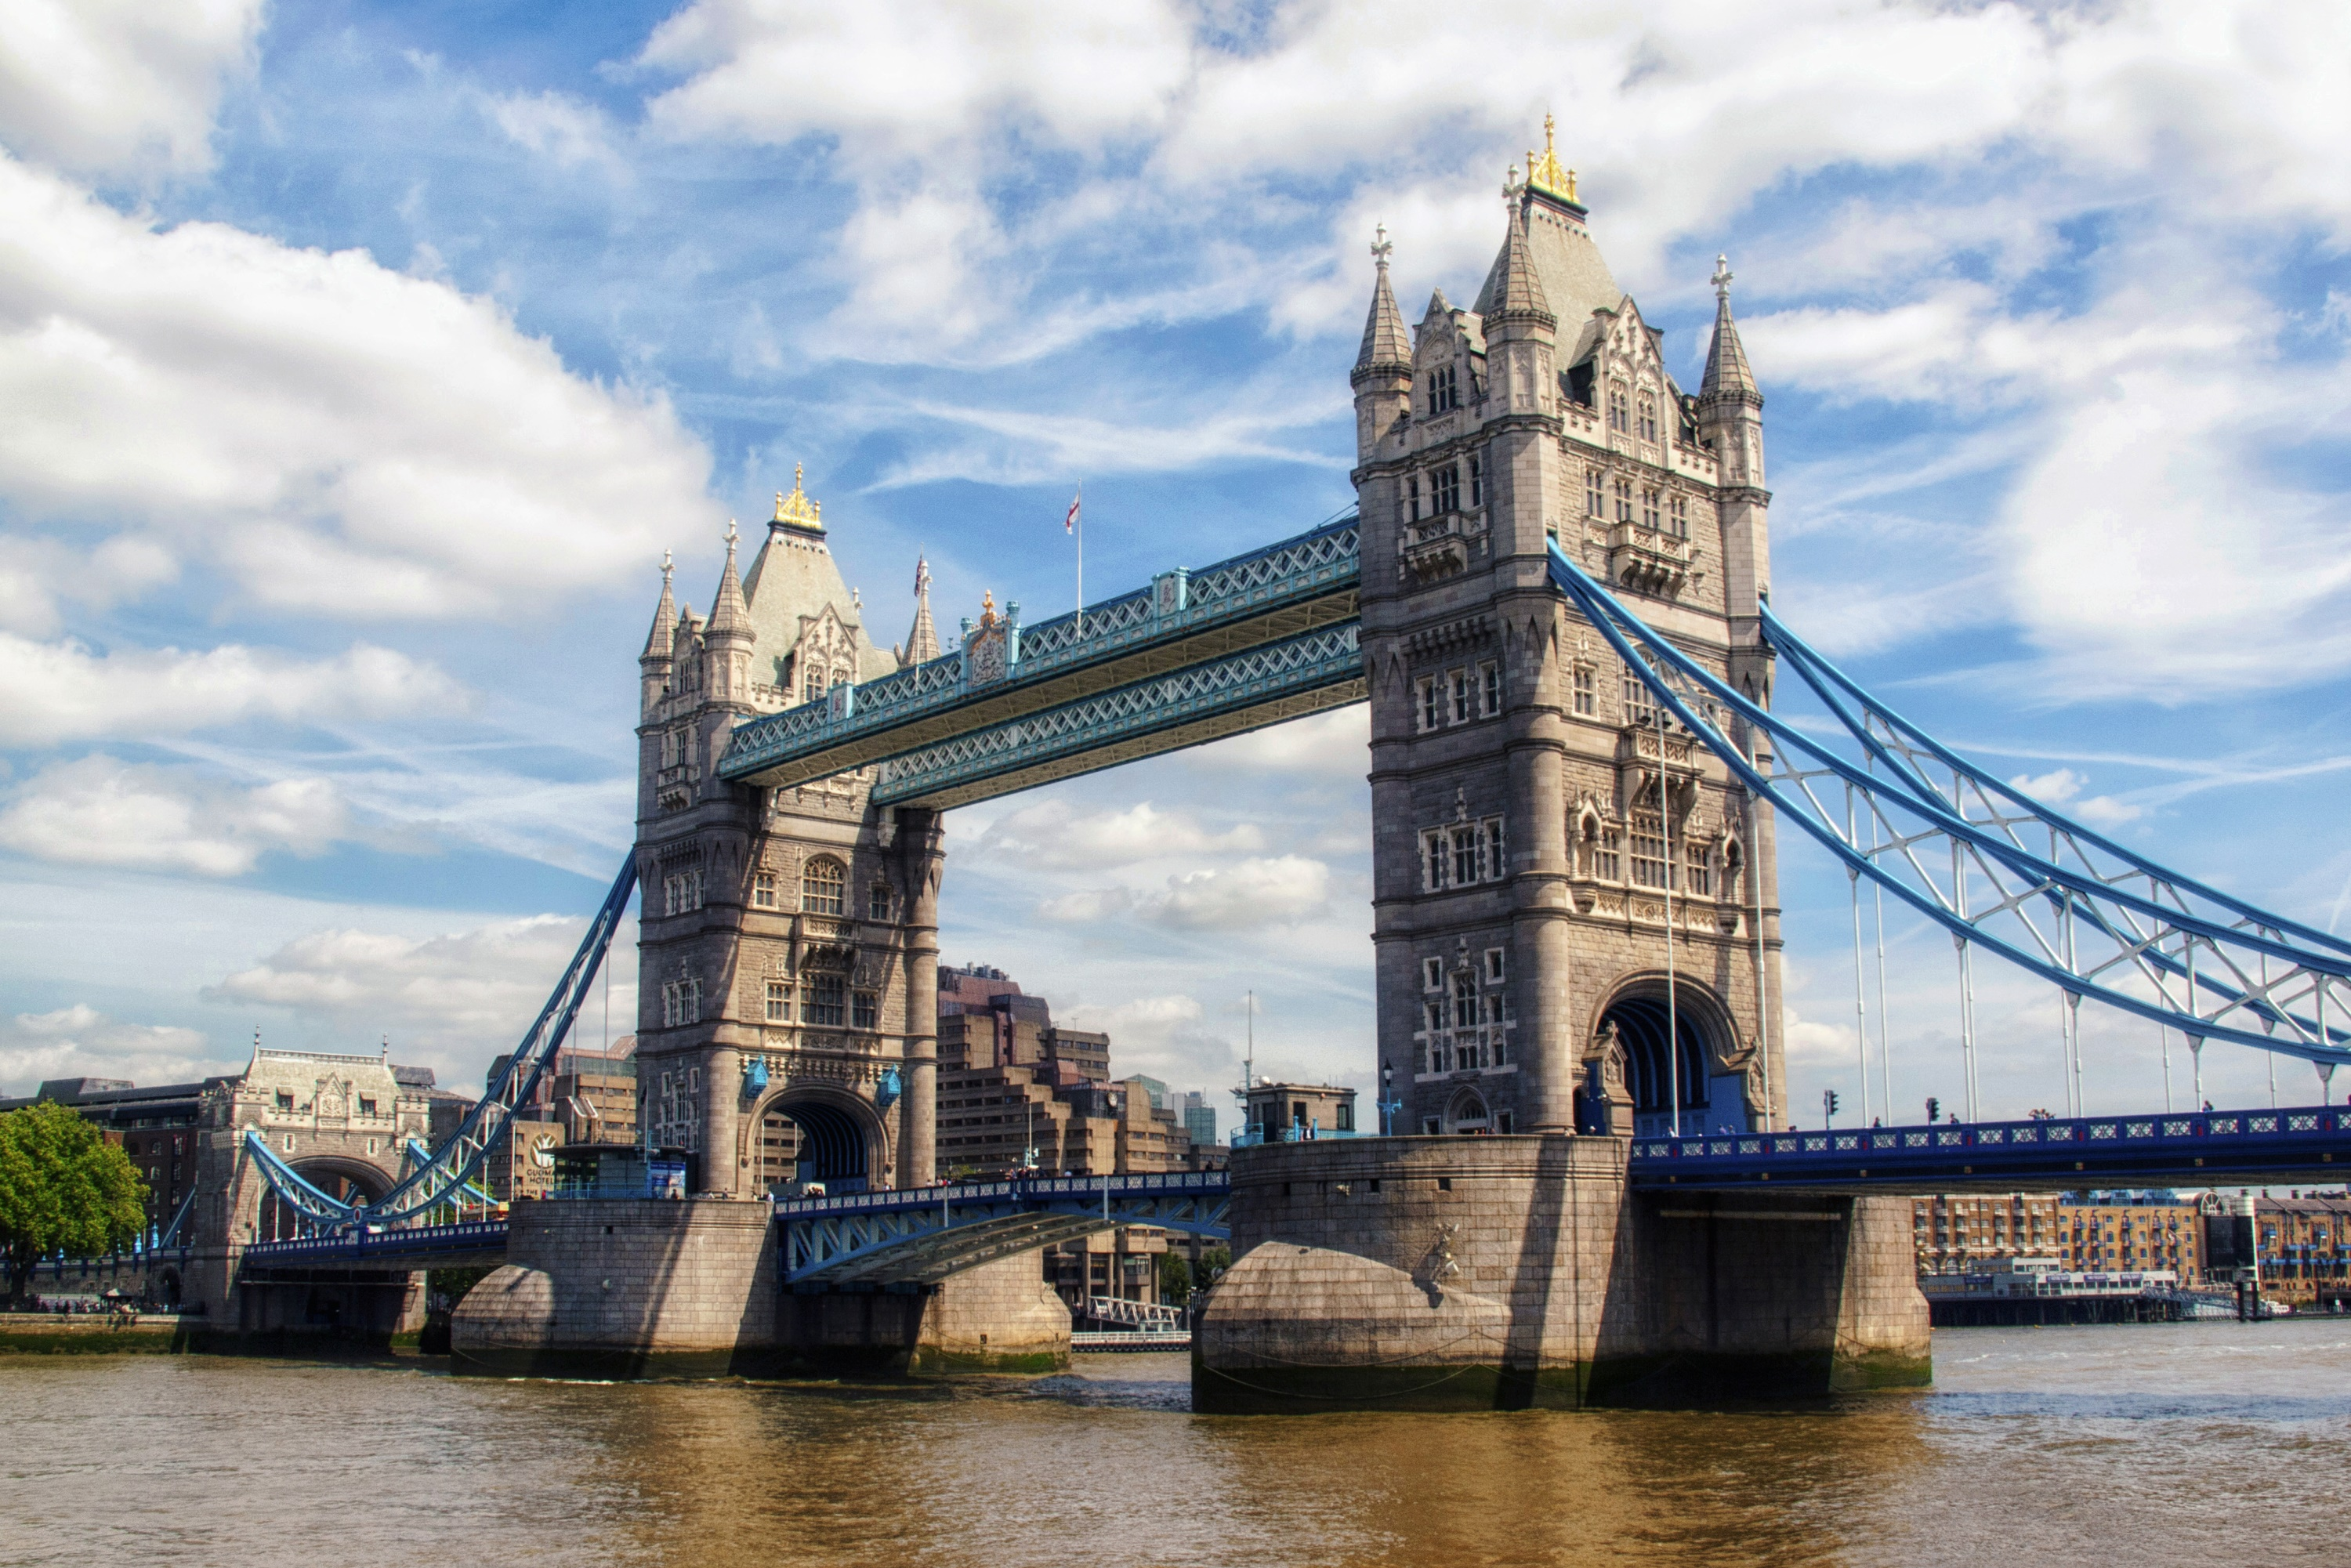 Tower Bridge, London by Kevin Poh on Flickr | CC BY 2.0